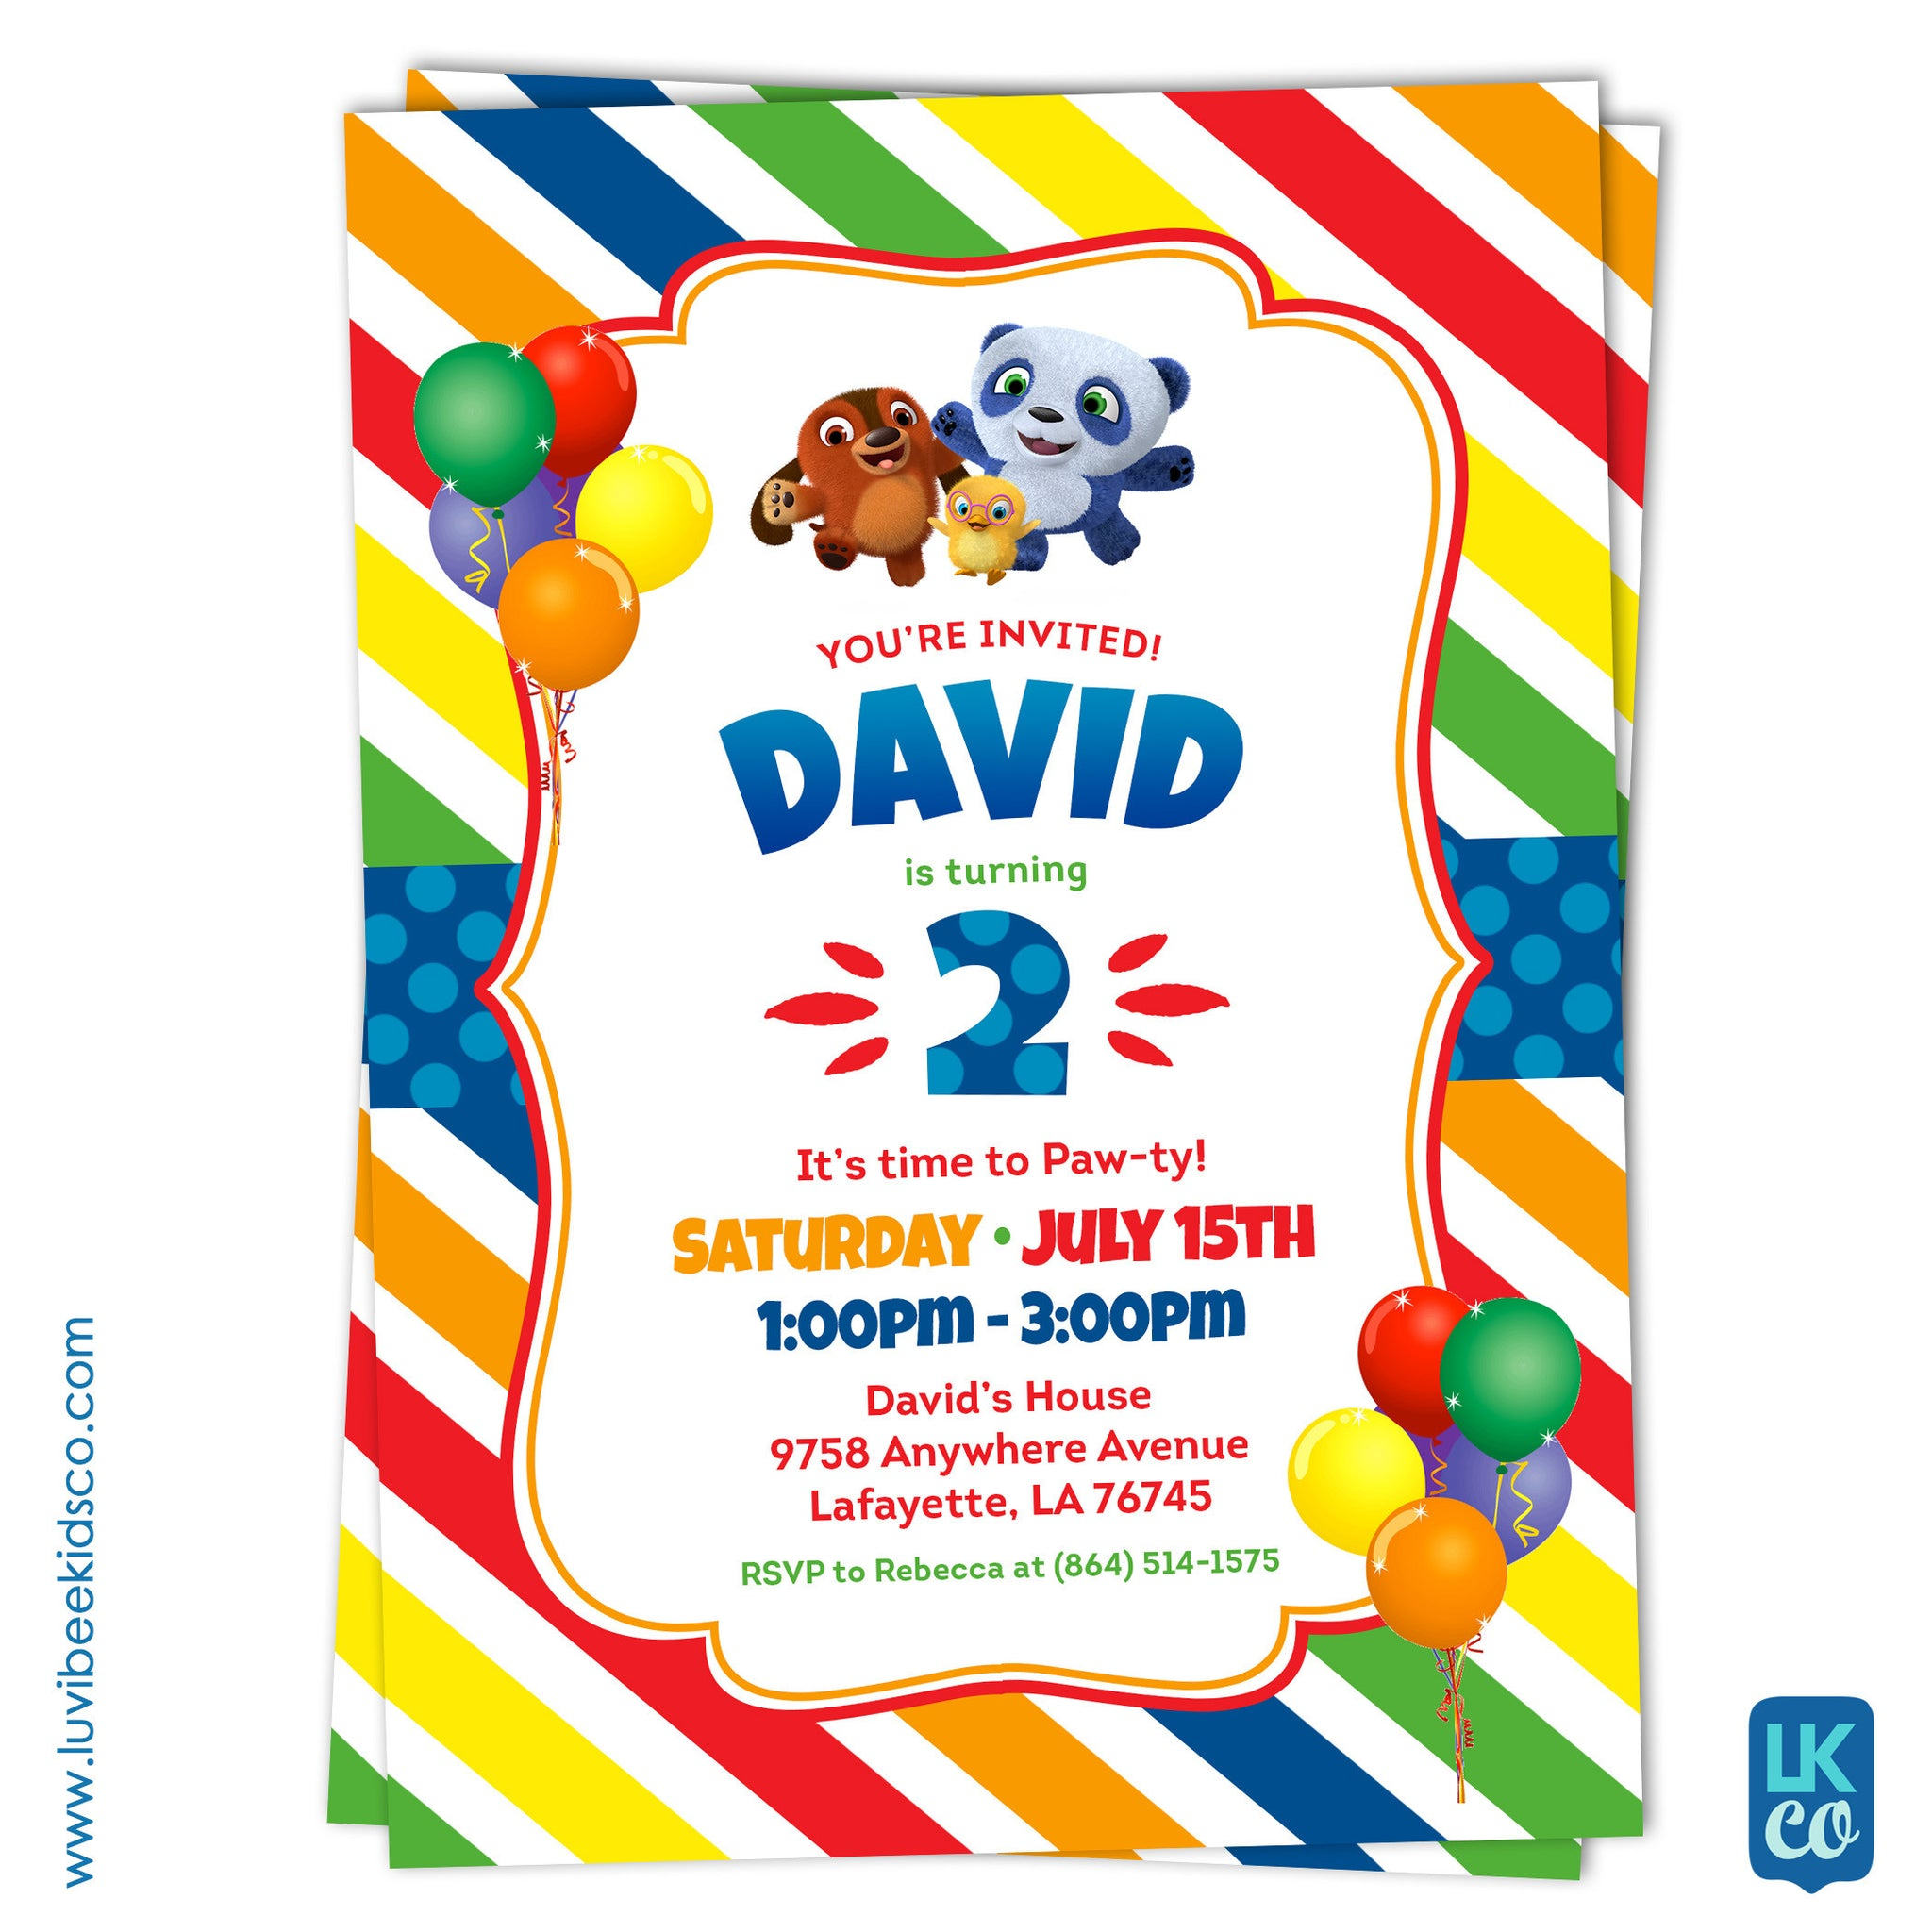 Ruff Ruff Tweet and Dave Invitation | Printable Invitation - LuvibeeKidsCo